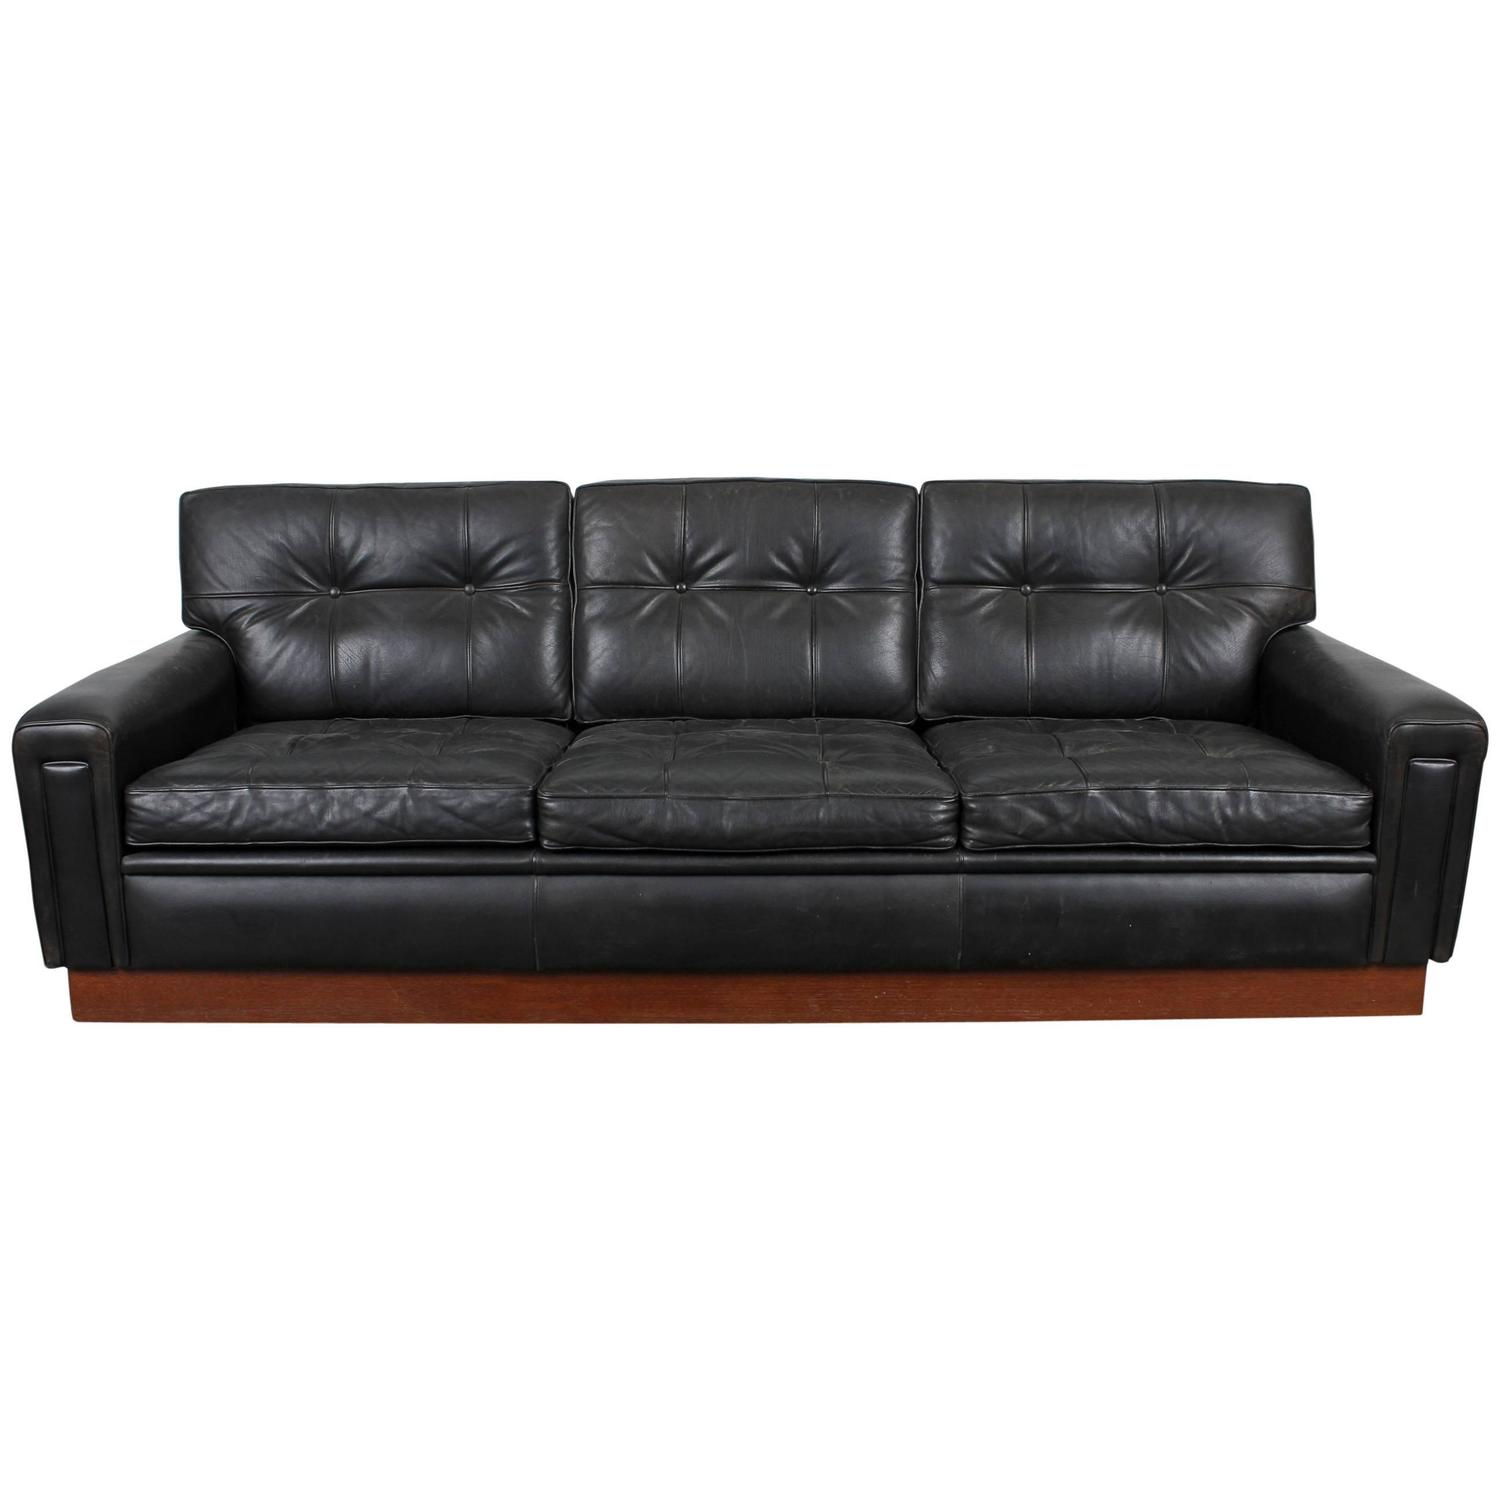 Mid century modern black leather sofa by arne norell at for Mid century modern leather sofa